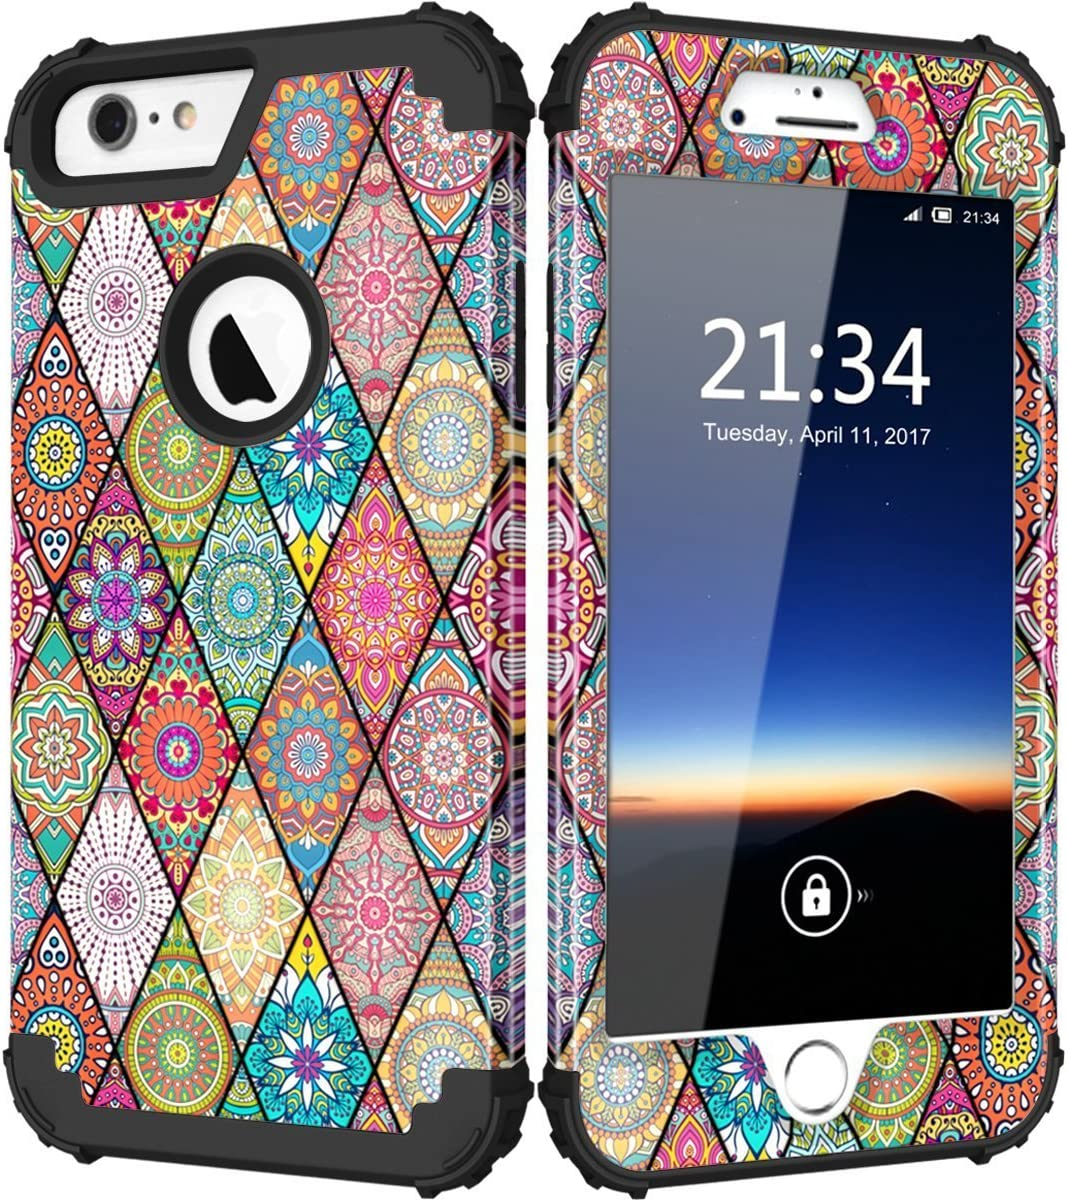 """Hocase iPhone 6s Plus Case, Drop Protection Shockproof Silicone Rubber Bumper+Hard Shell Hybrid Dual Layer Full-Body Protective Case for iPhone 6 Plus/iPhone 6s Plus 5.5"""" - Mandala Flowers/Black"""